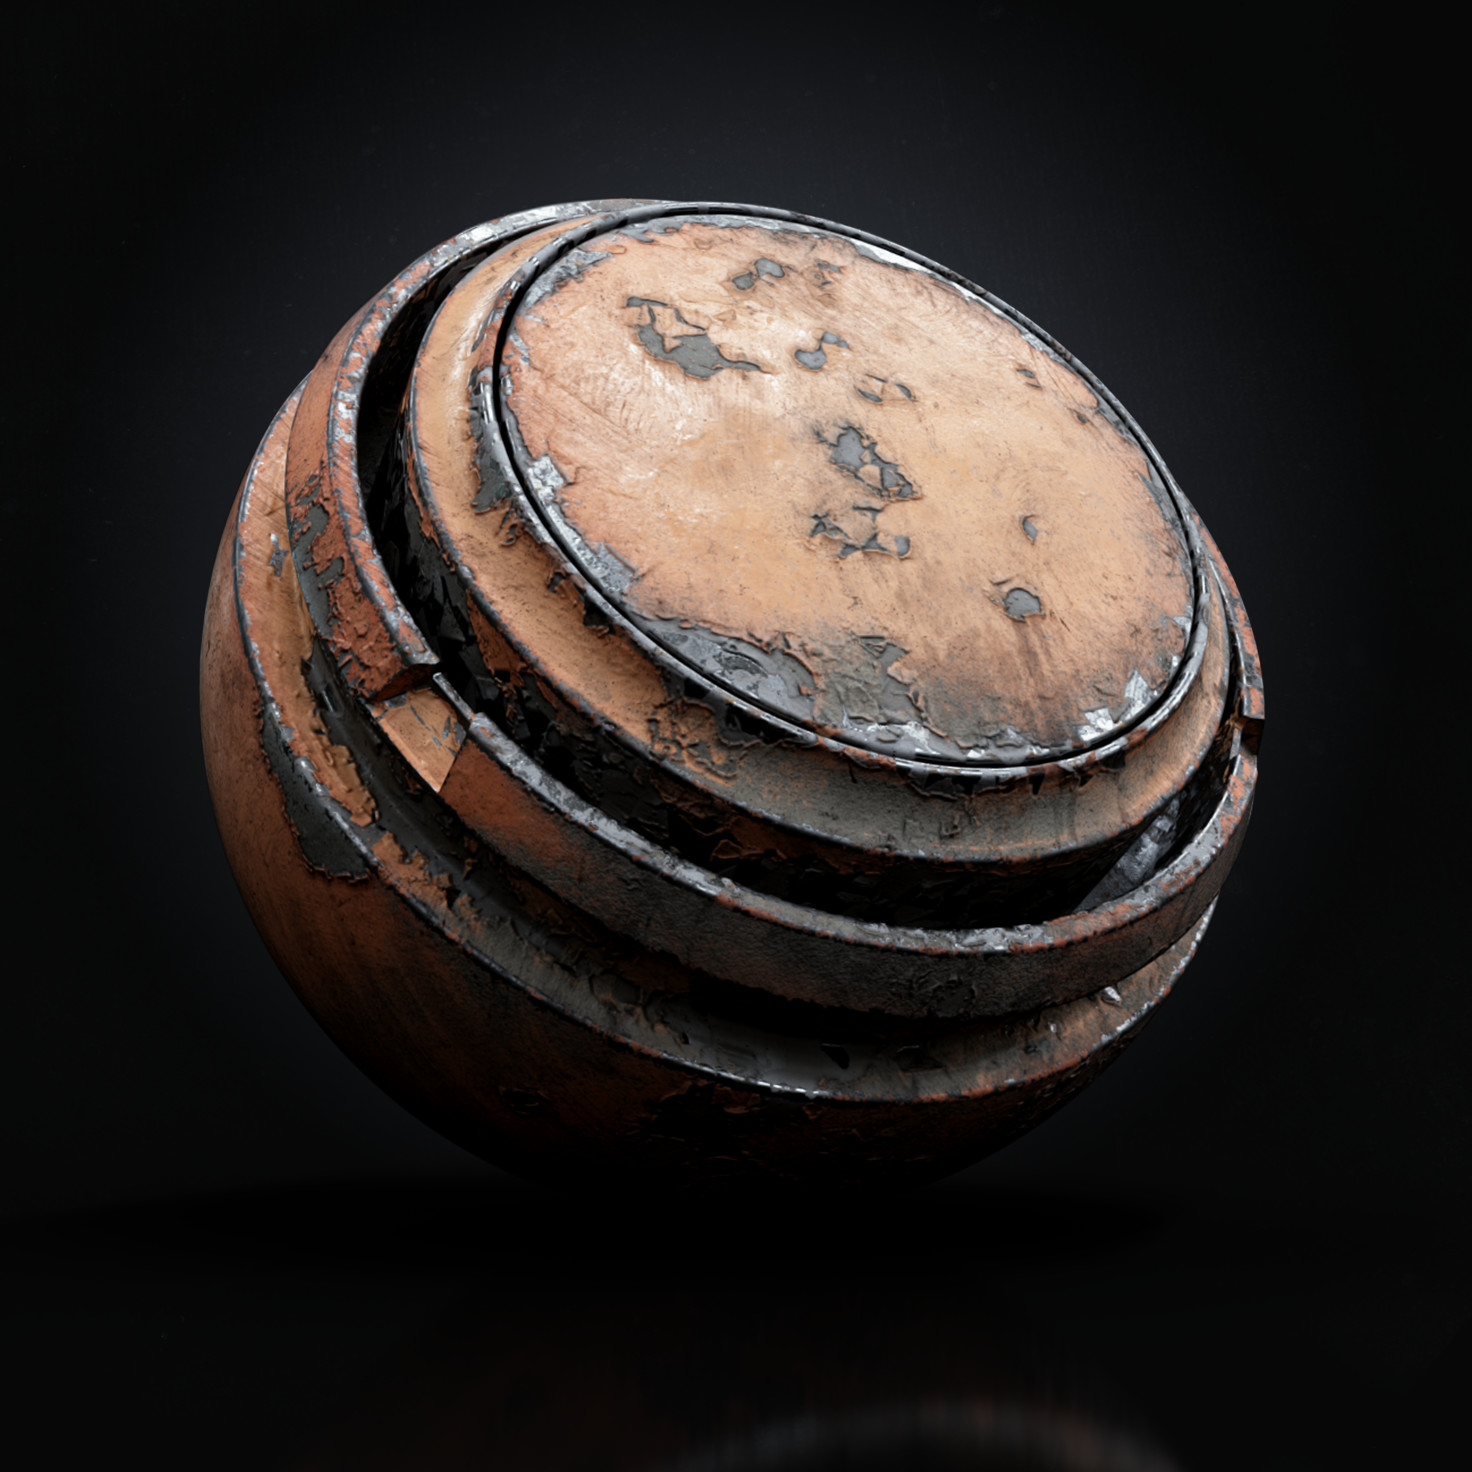 Andrew Voelkl Substance Painter Smart Materials Upload and download materials, brushes, tutorials and much more directly from within the substance tools or from your internet browser. andrew voelkl